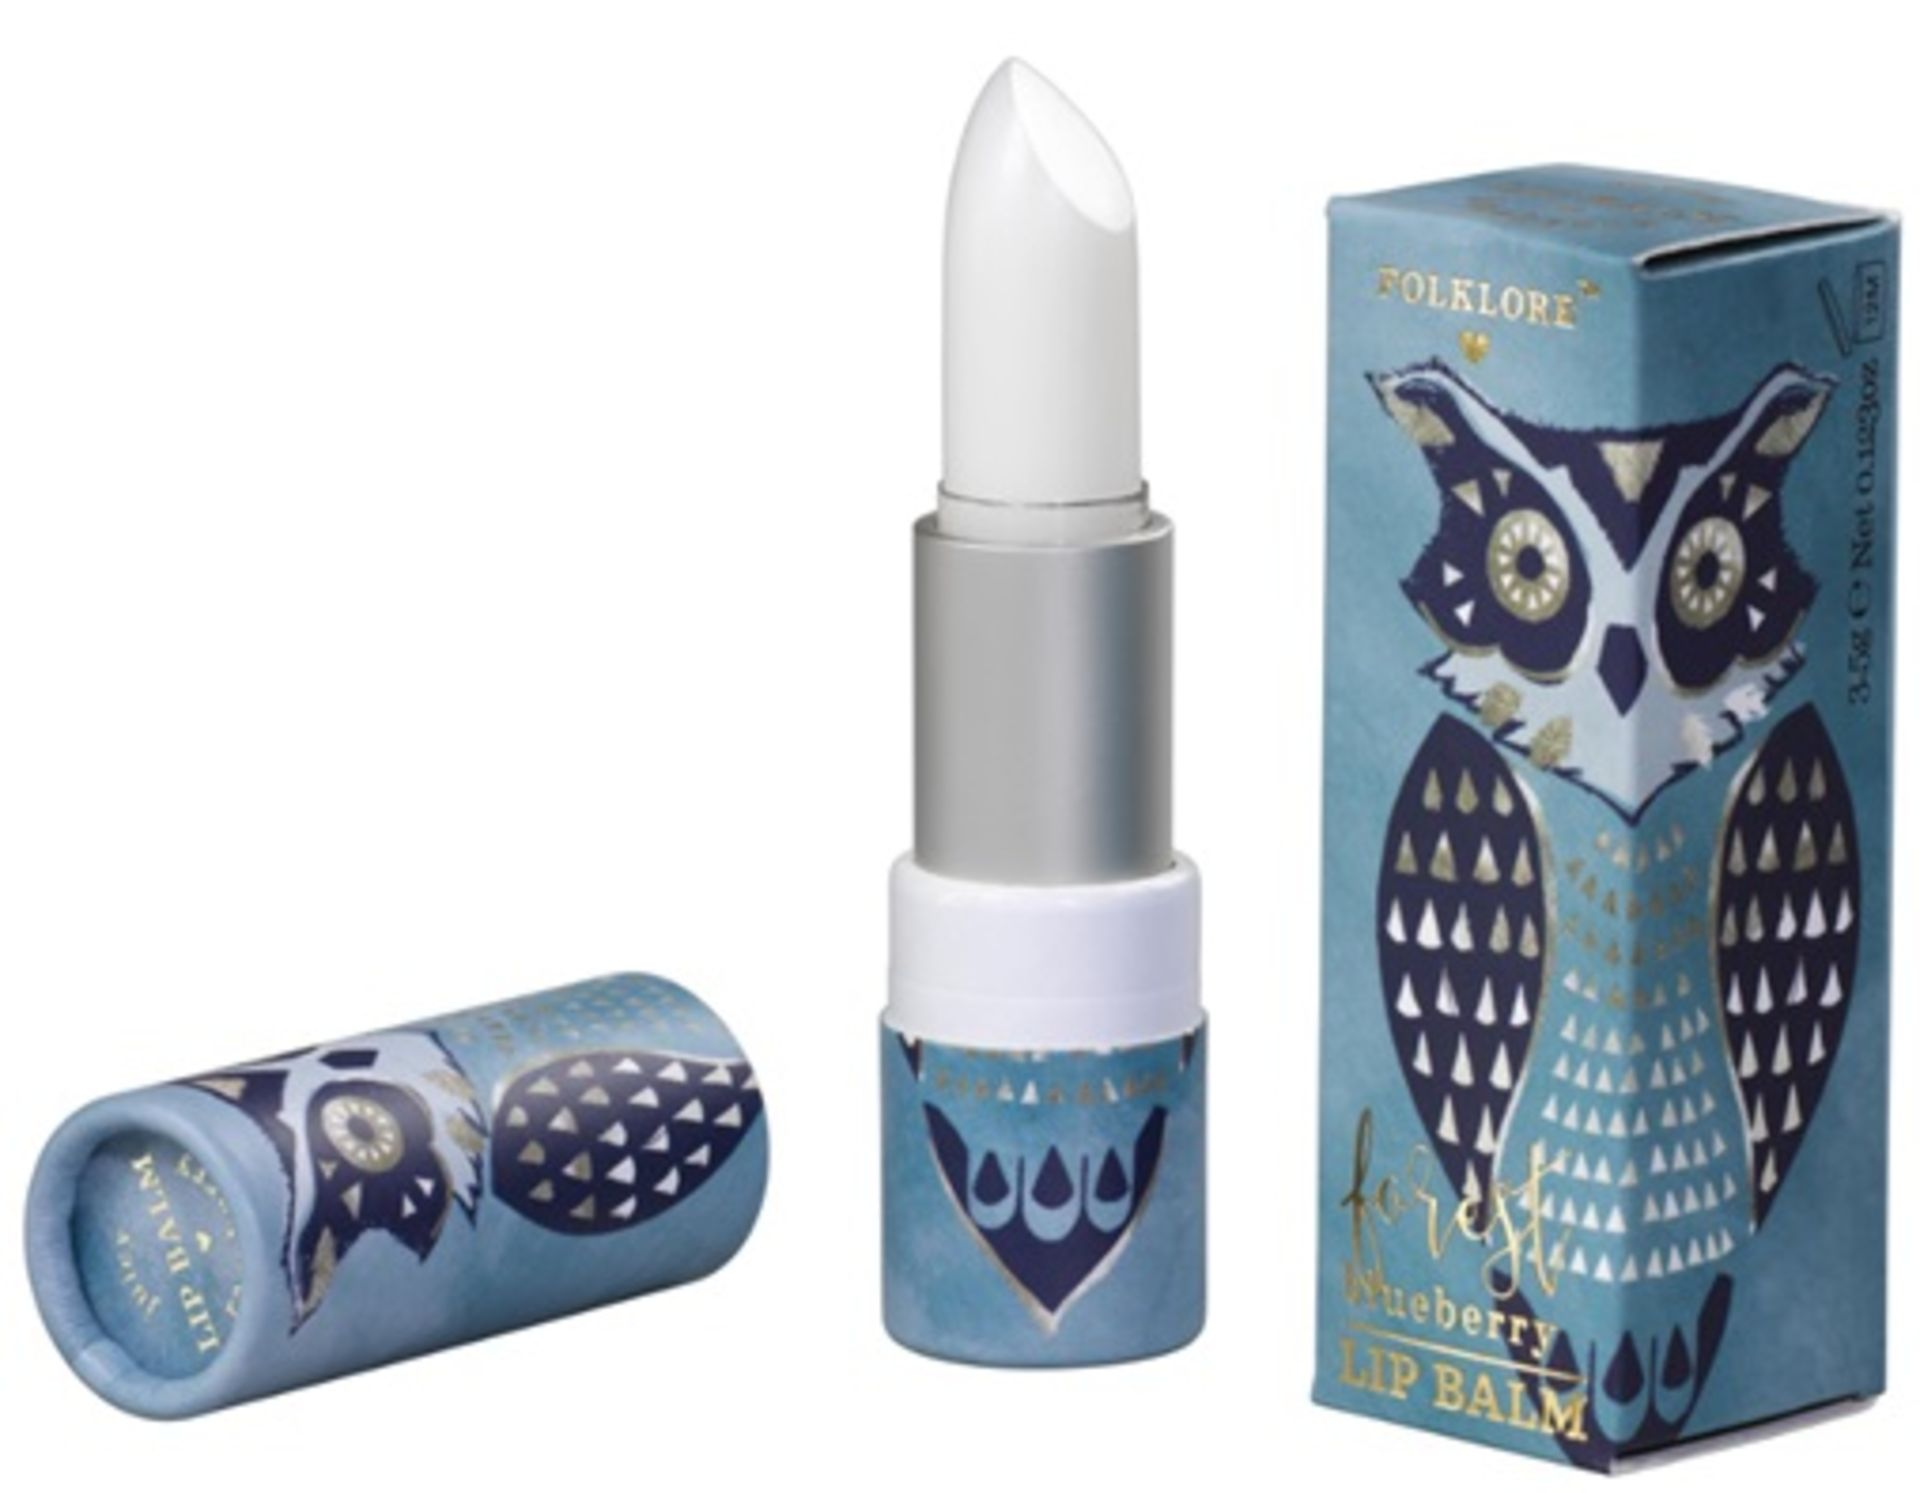 100 x Various Folklore Lip Balm | 3.5g | Total RRP £599 - Image 2 of 4